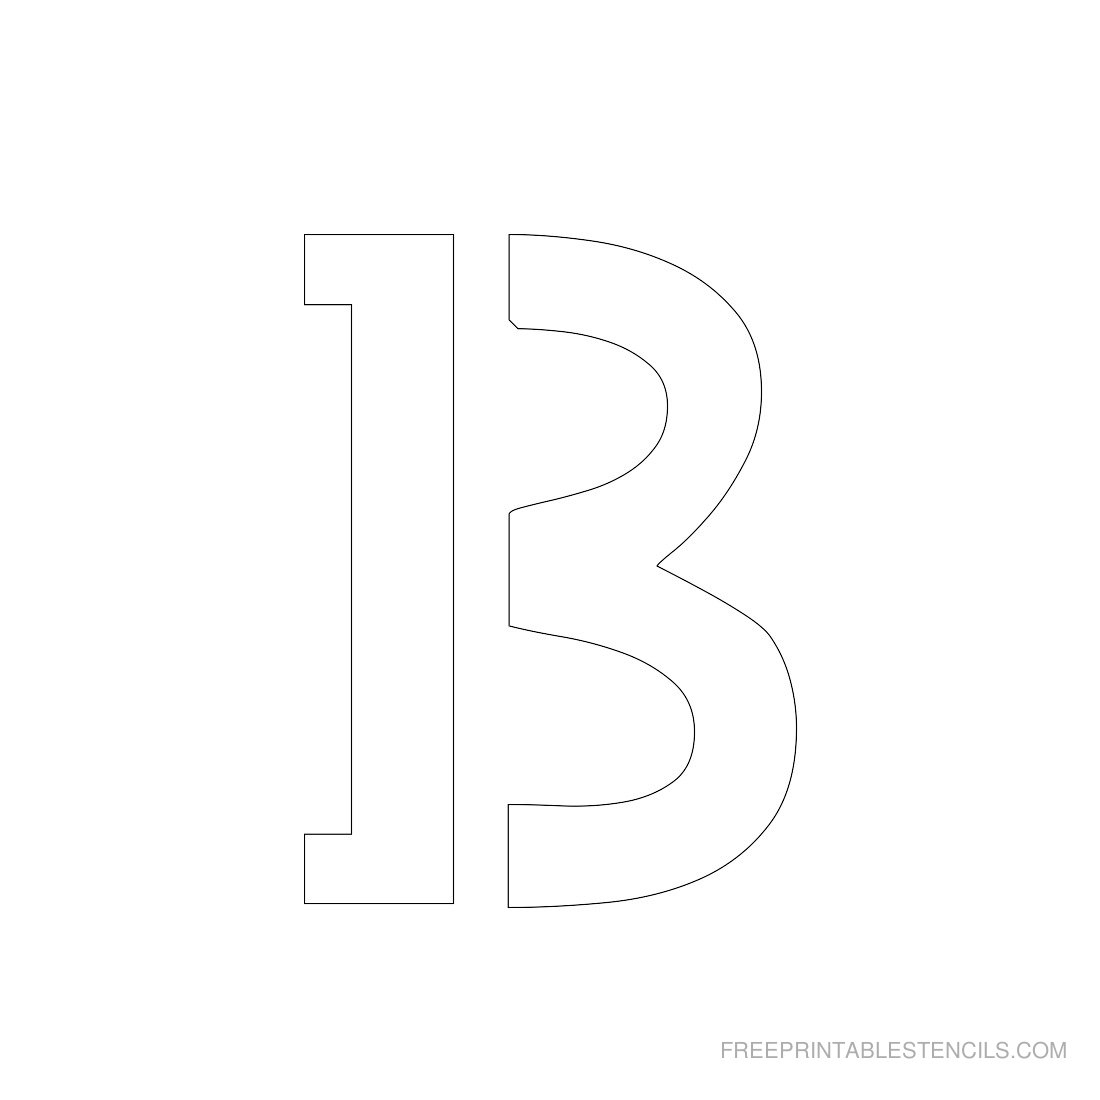 Printable 3 Inch Letter Stencils A-Z | Free Printable Stencils - Free Printable 3 Inch Number Stencils